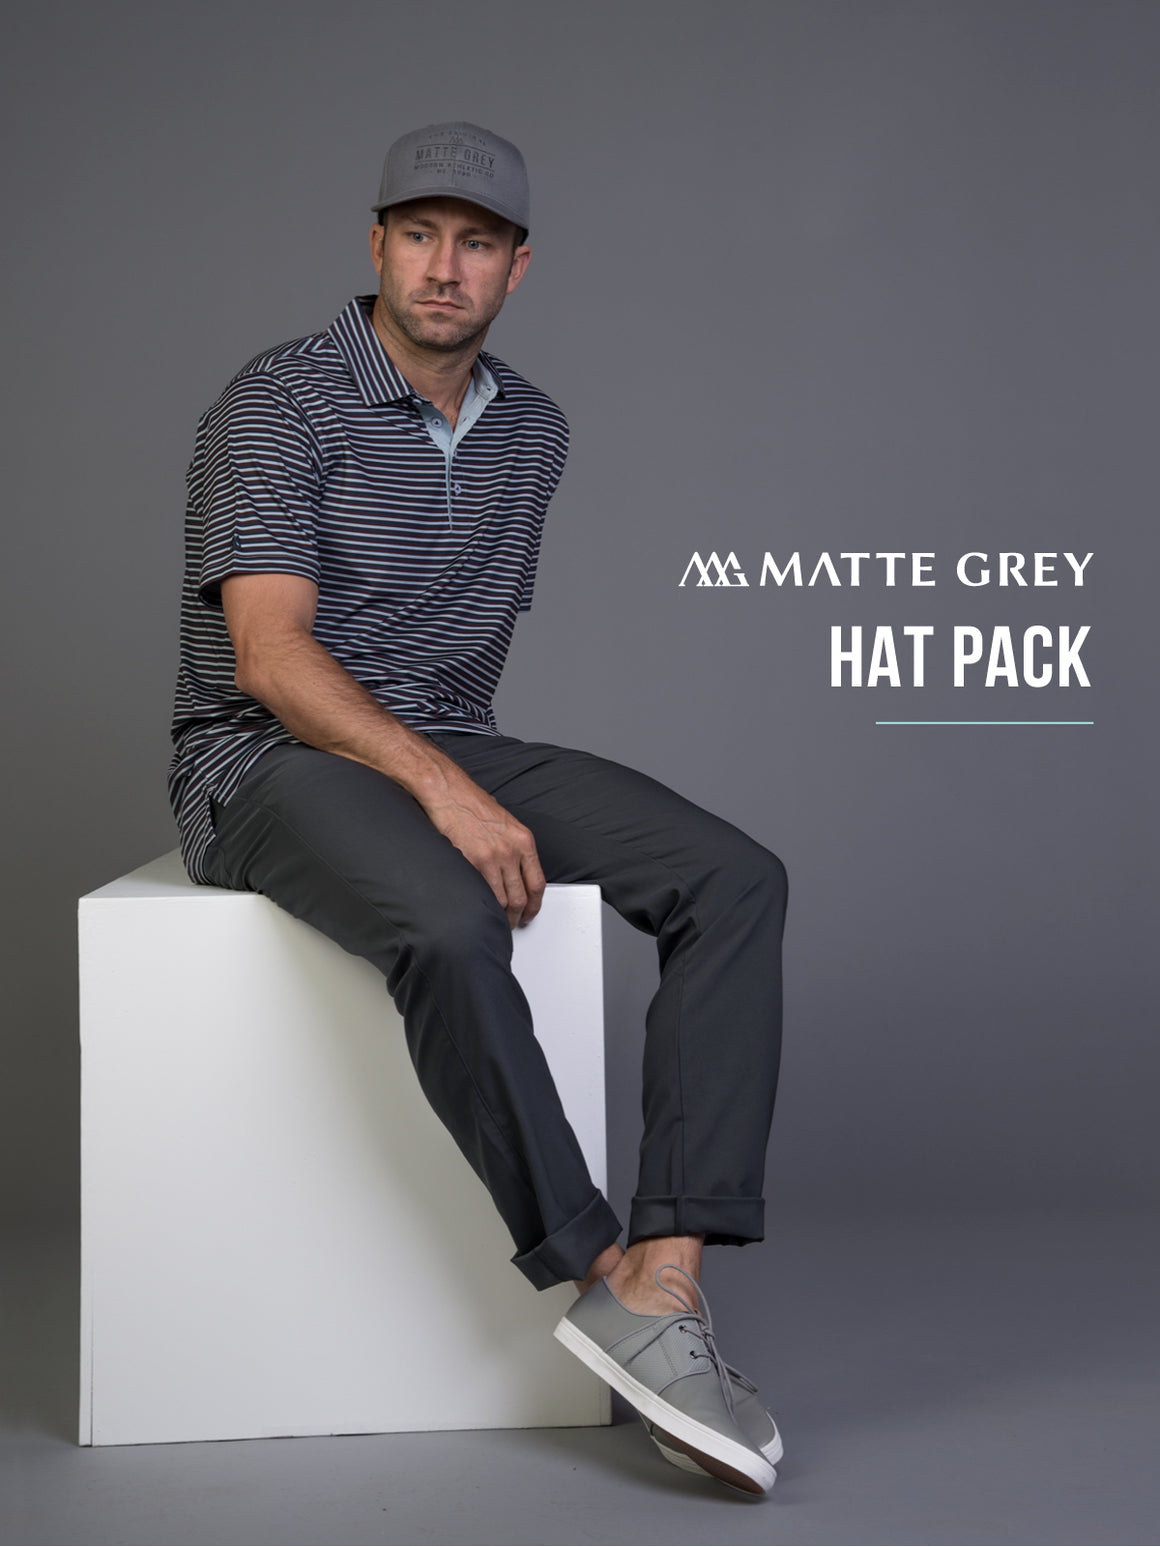 Matte Grey Mystery Hat Pack